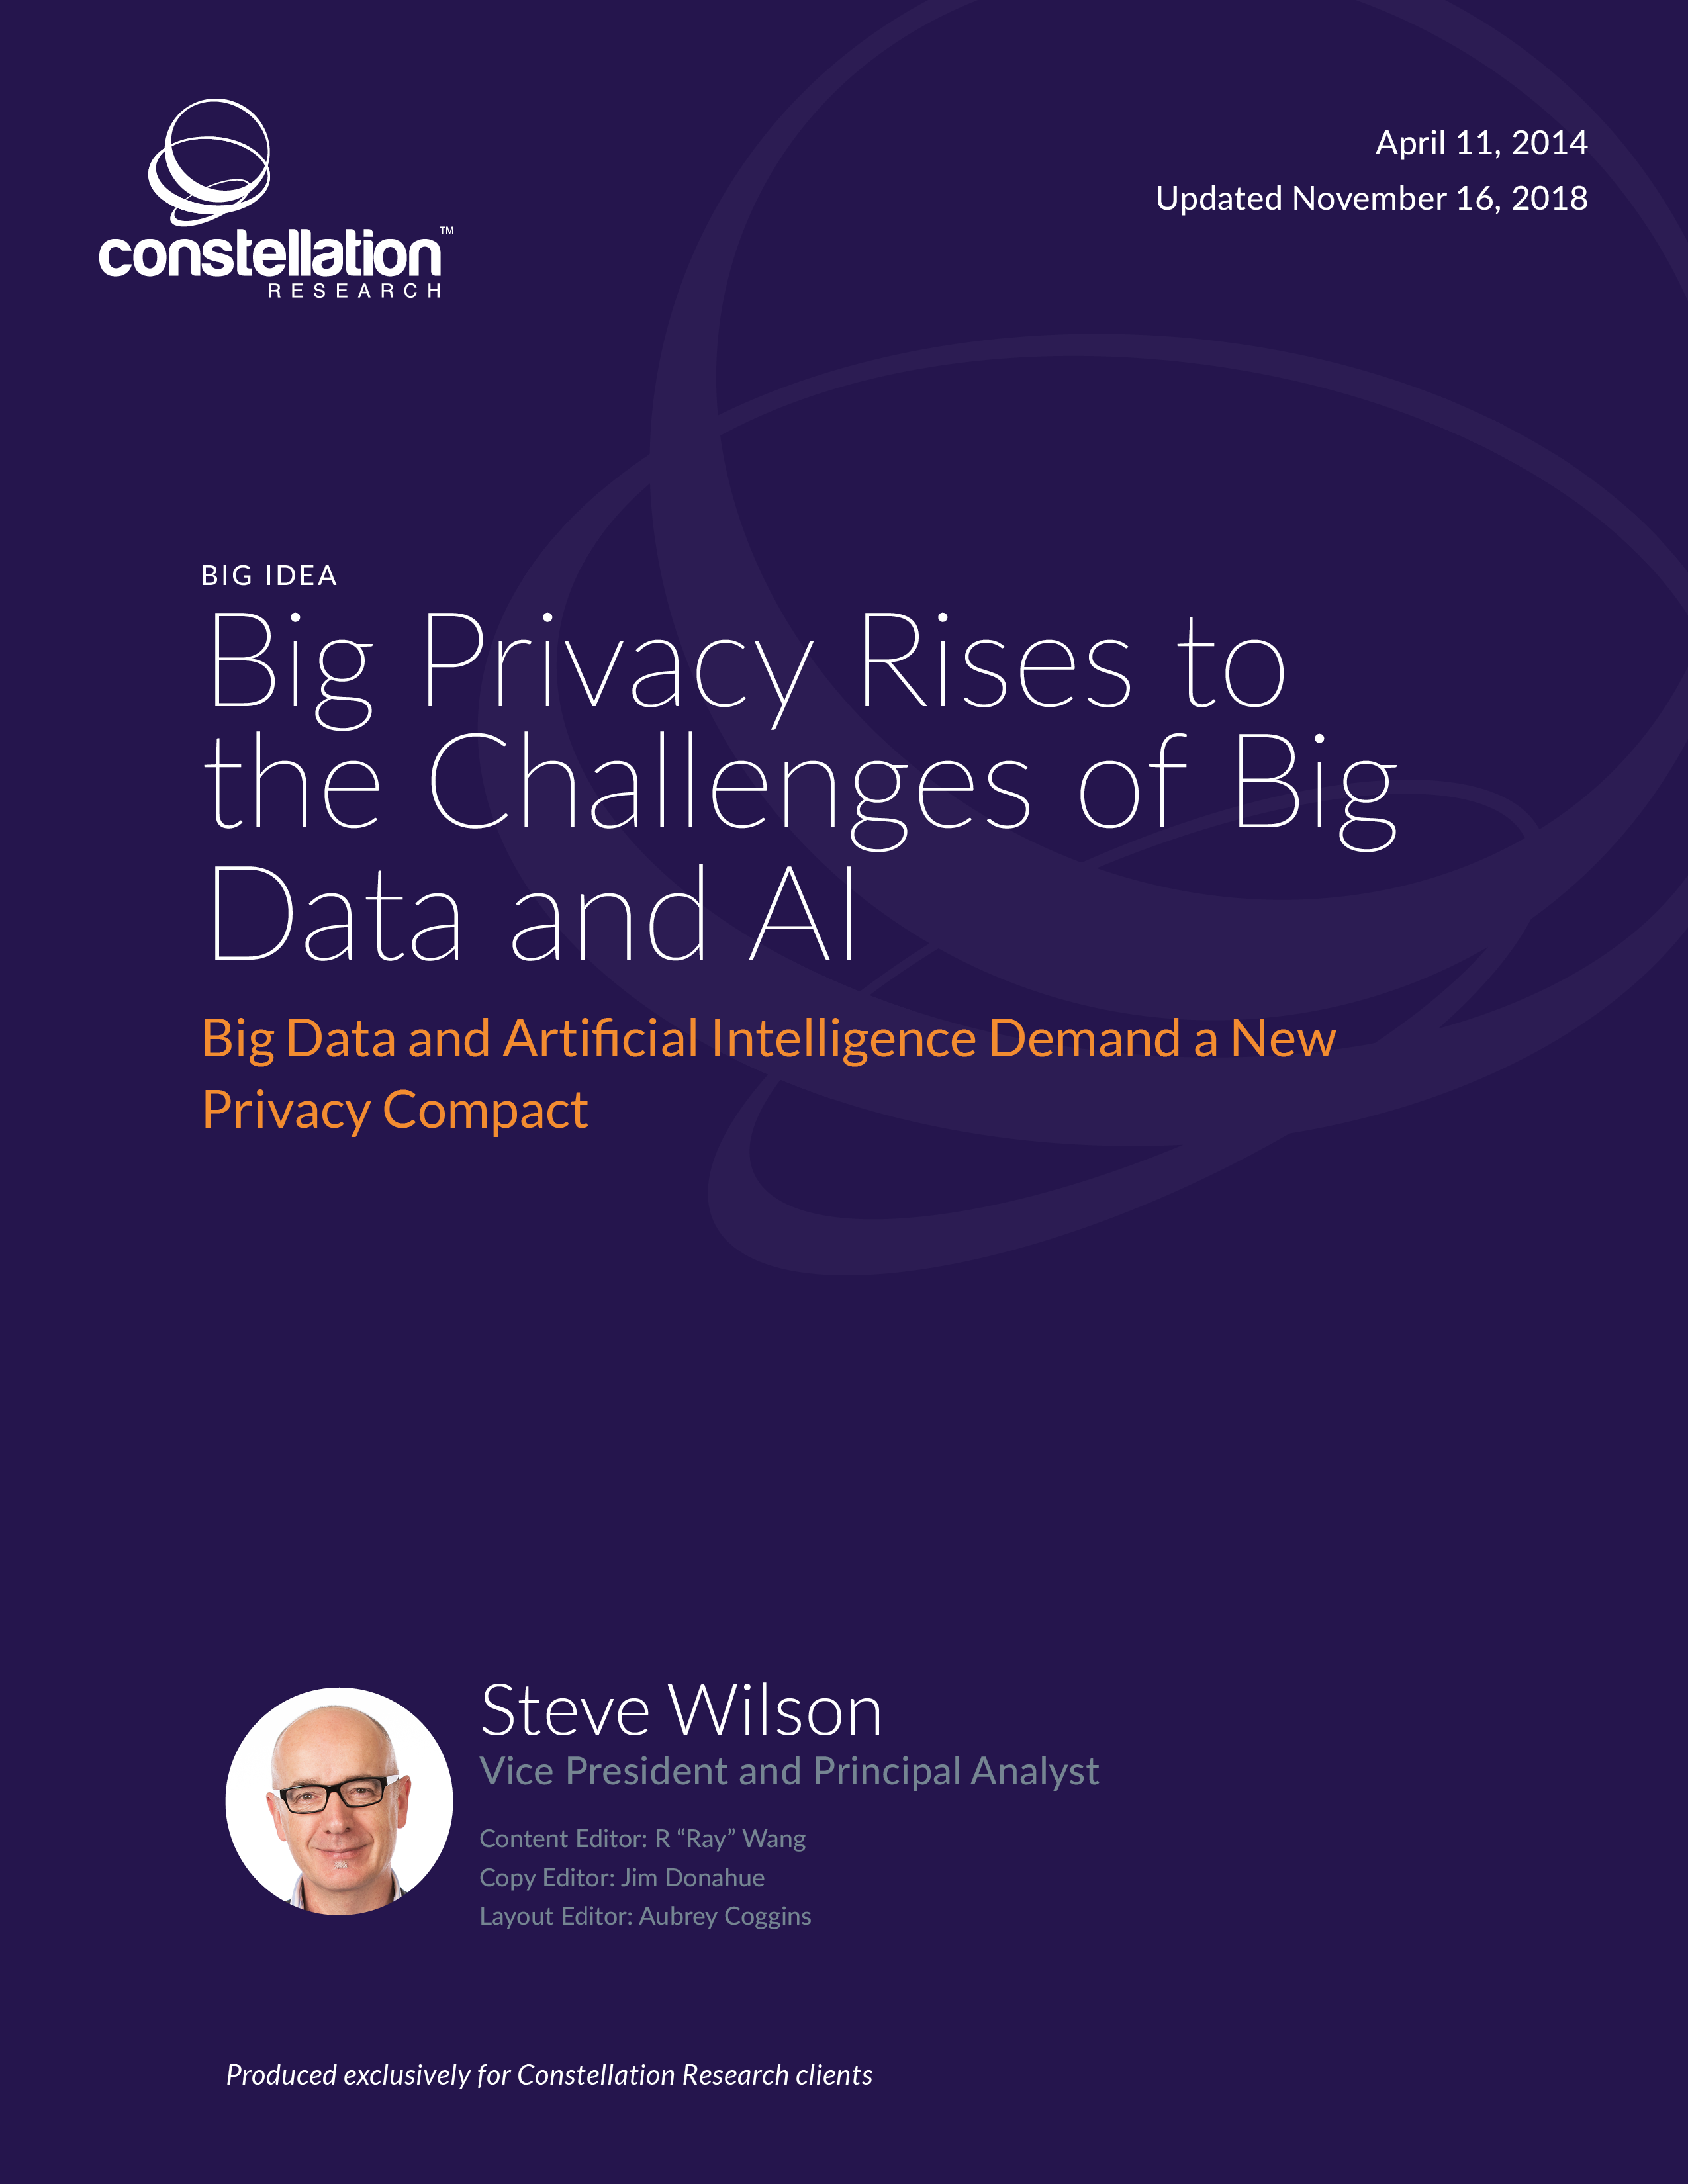 Big Privacy Rises to the Challenges of Big Data and AI